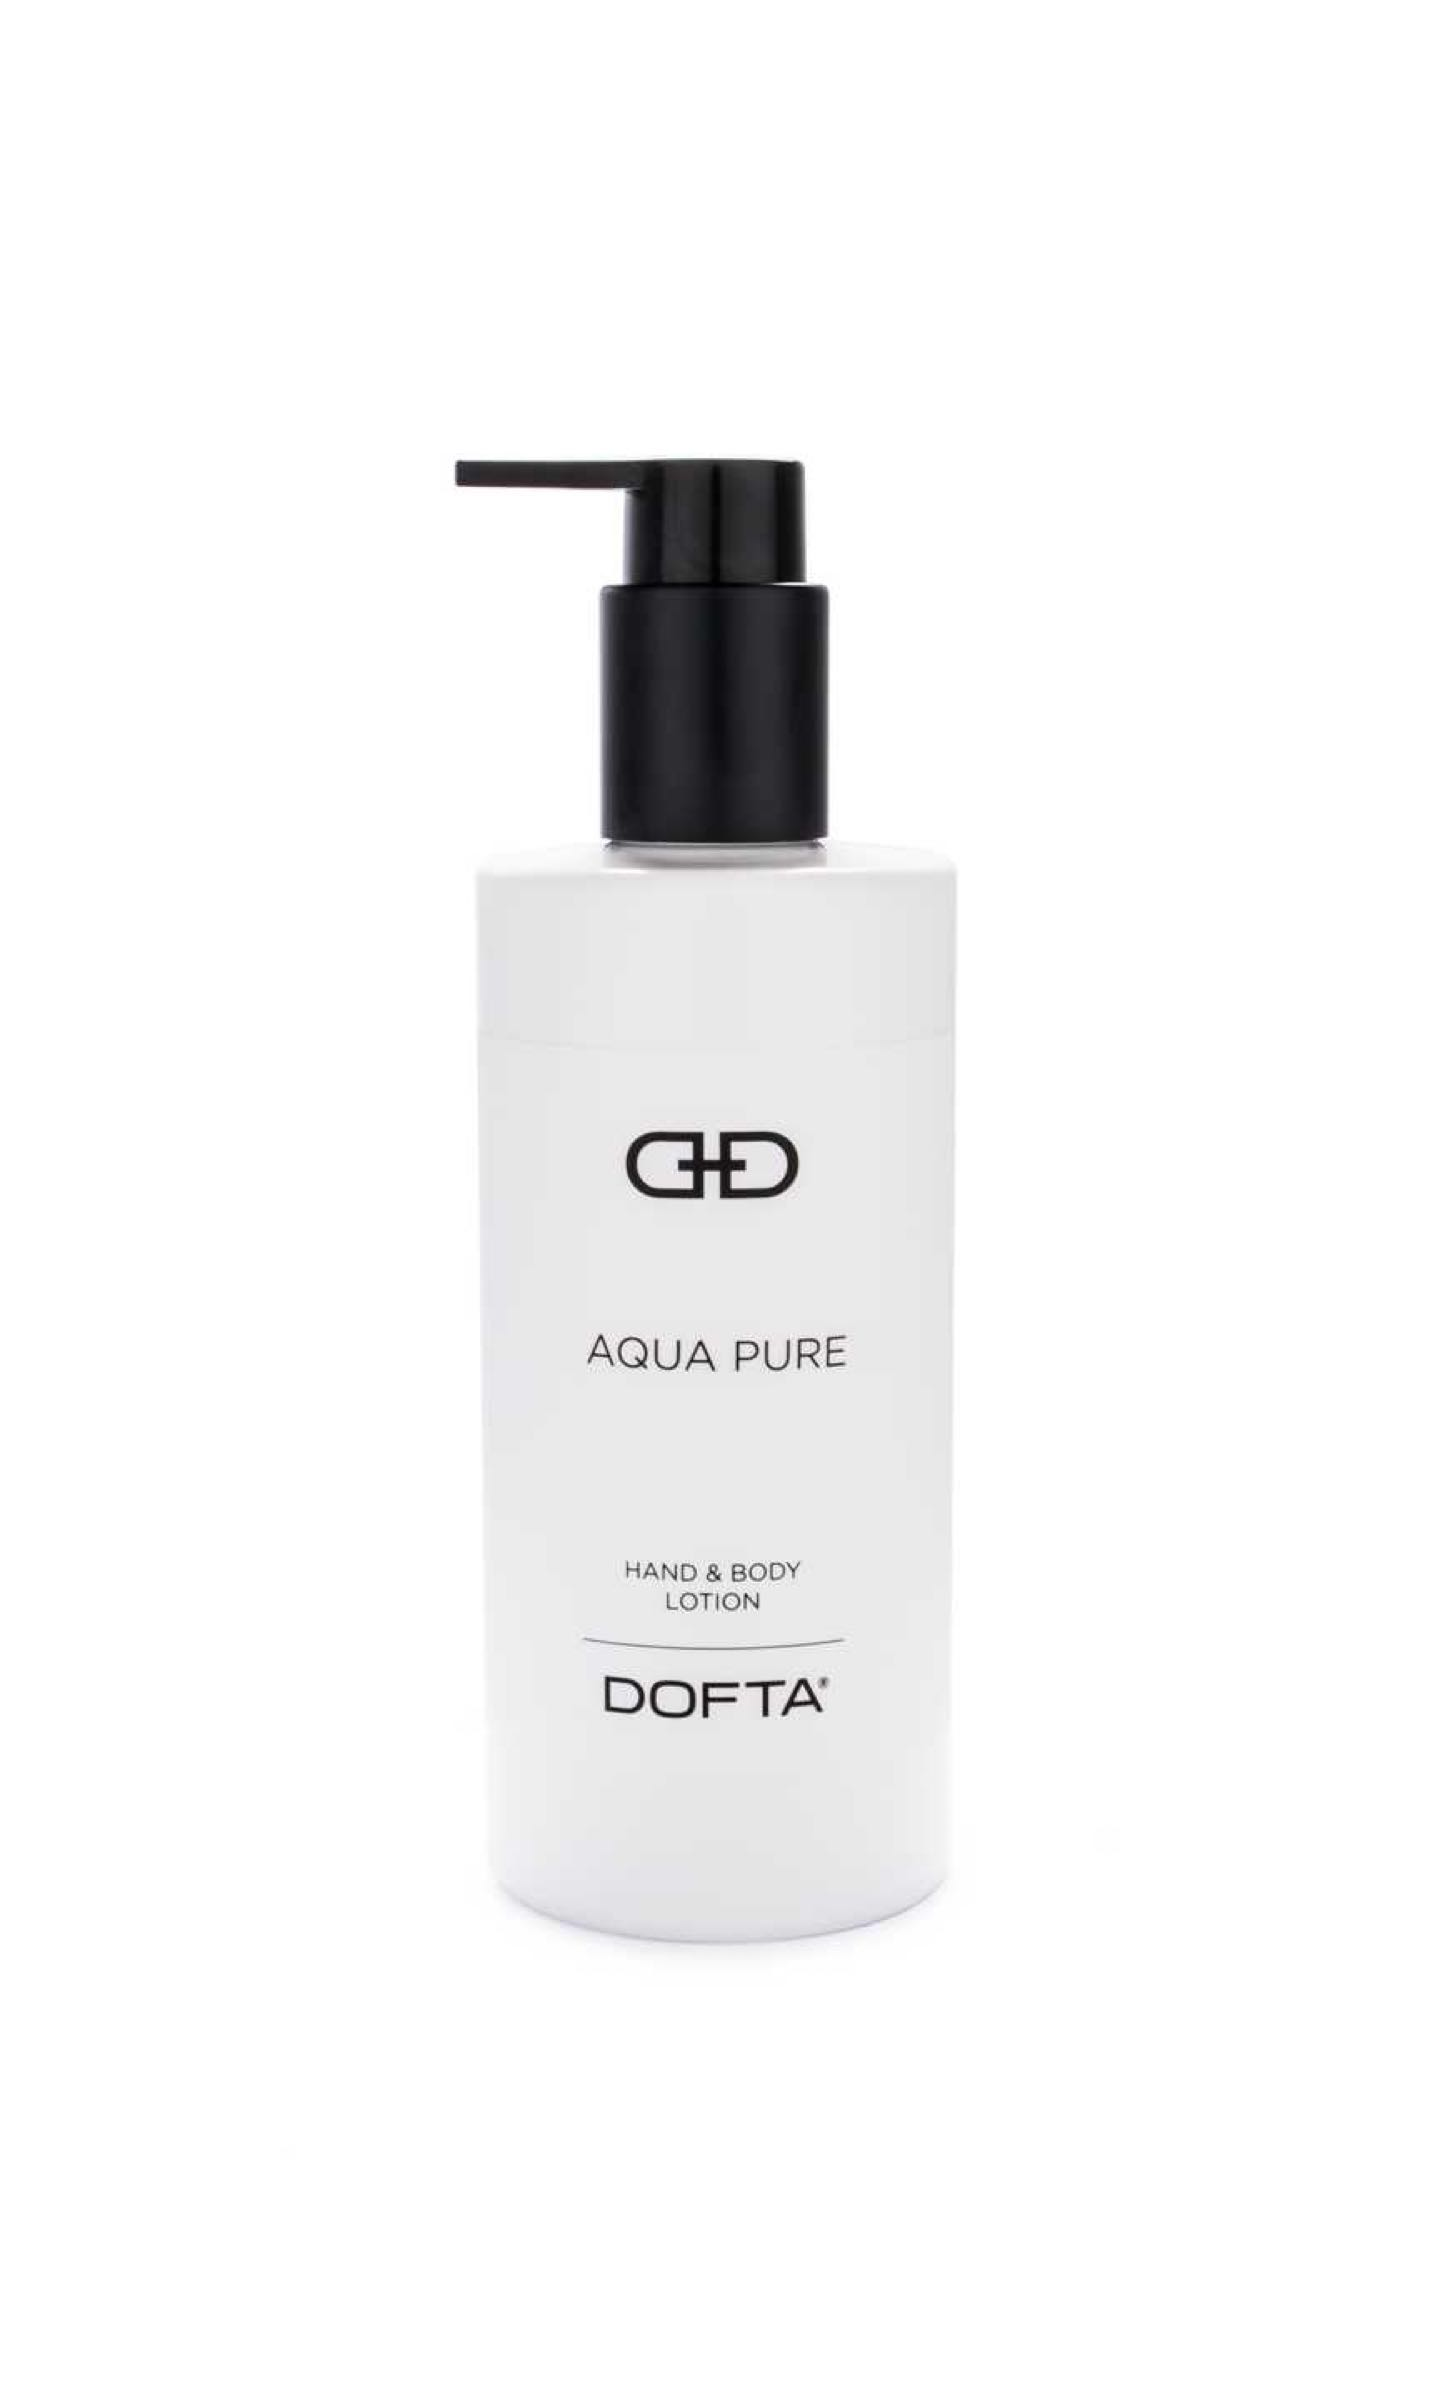 DOFTA Black & White - Hand & Body Lotion - Aqua Pure